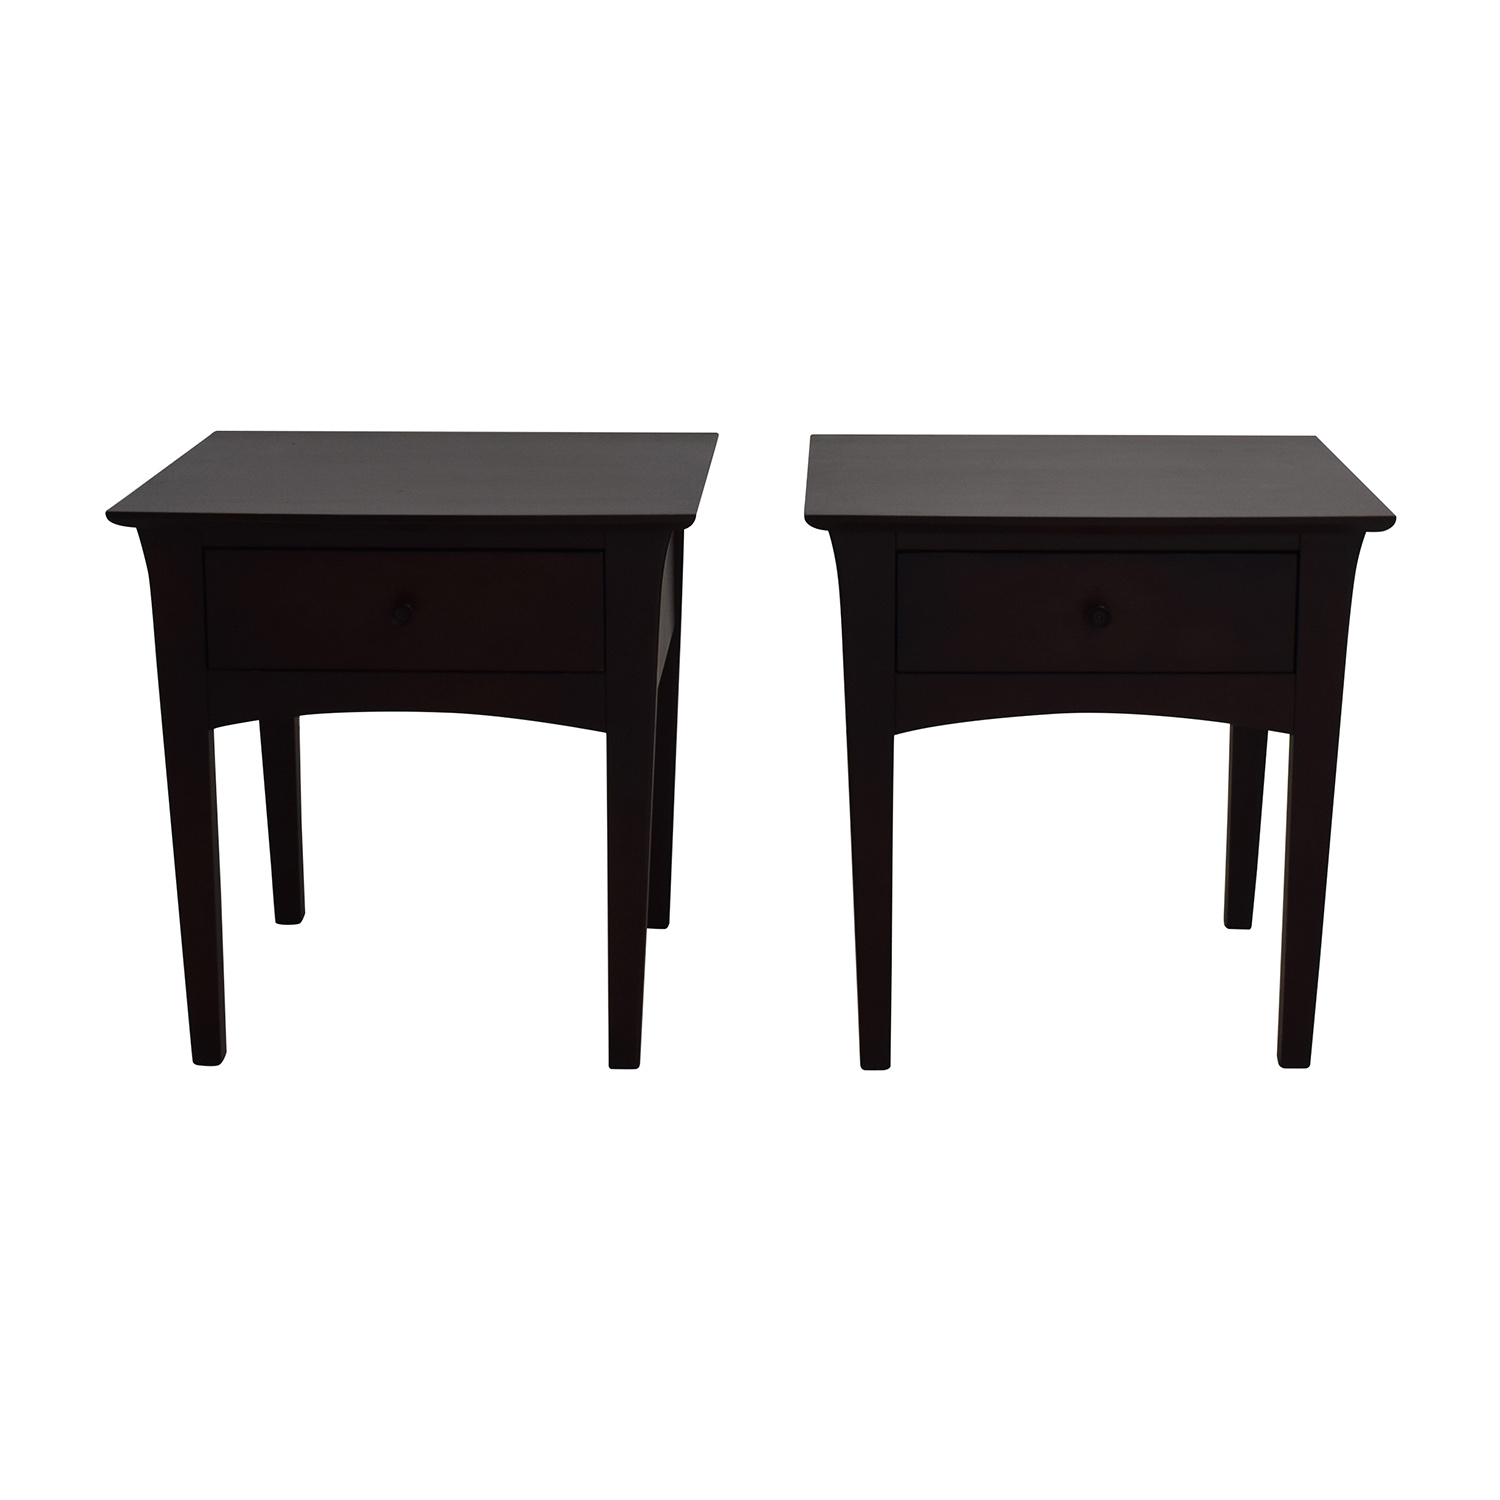 OFF Crate and Barrel Crate & Barrel Baronet Nightstands Tables